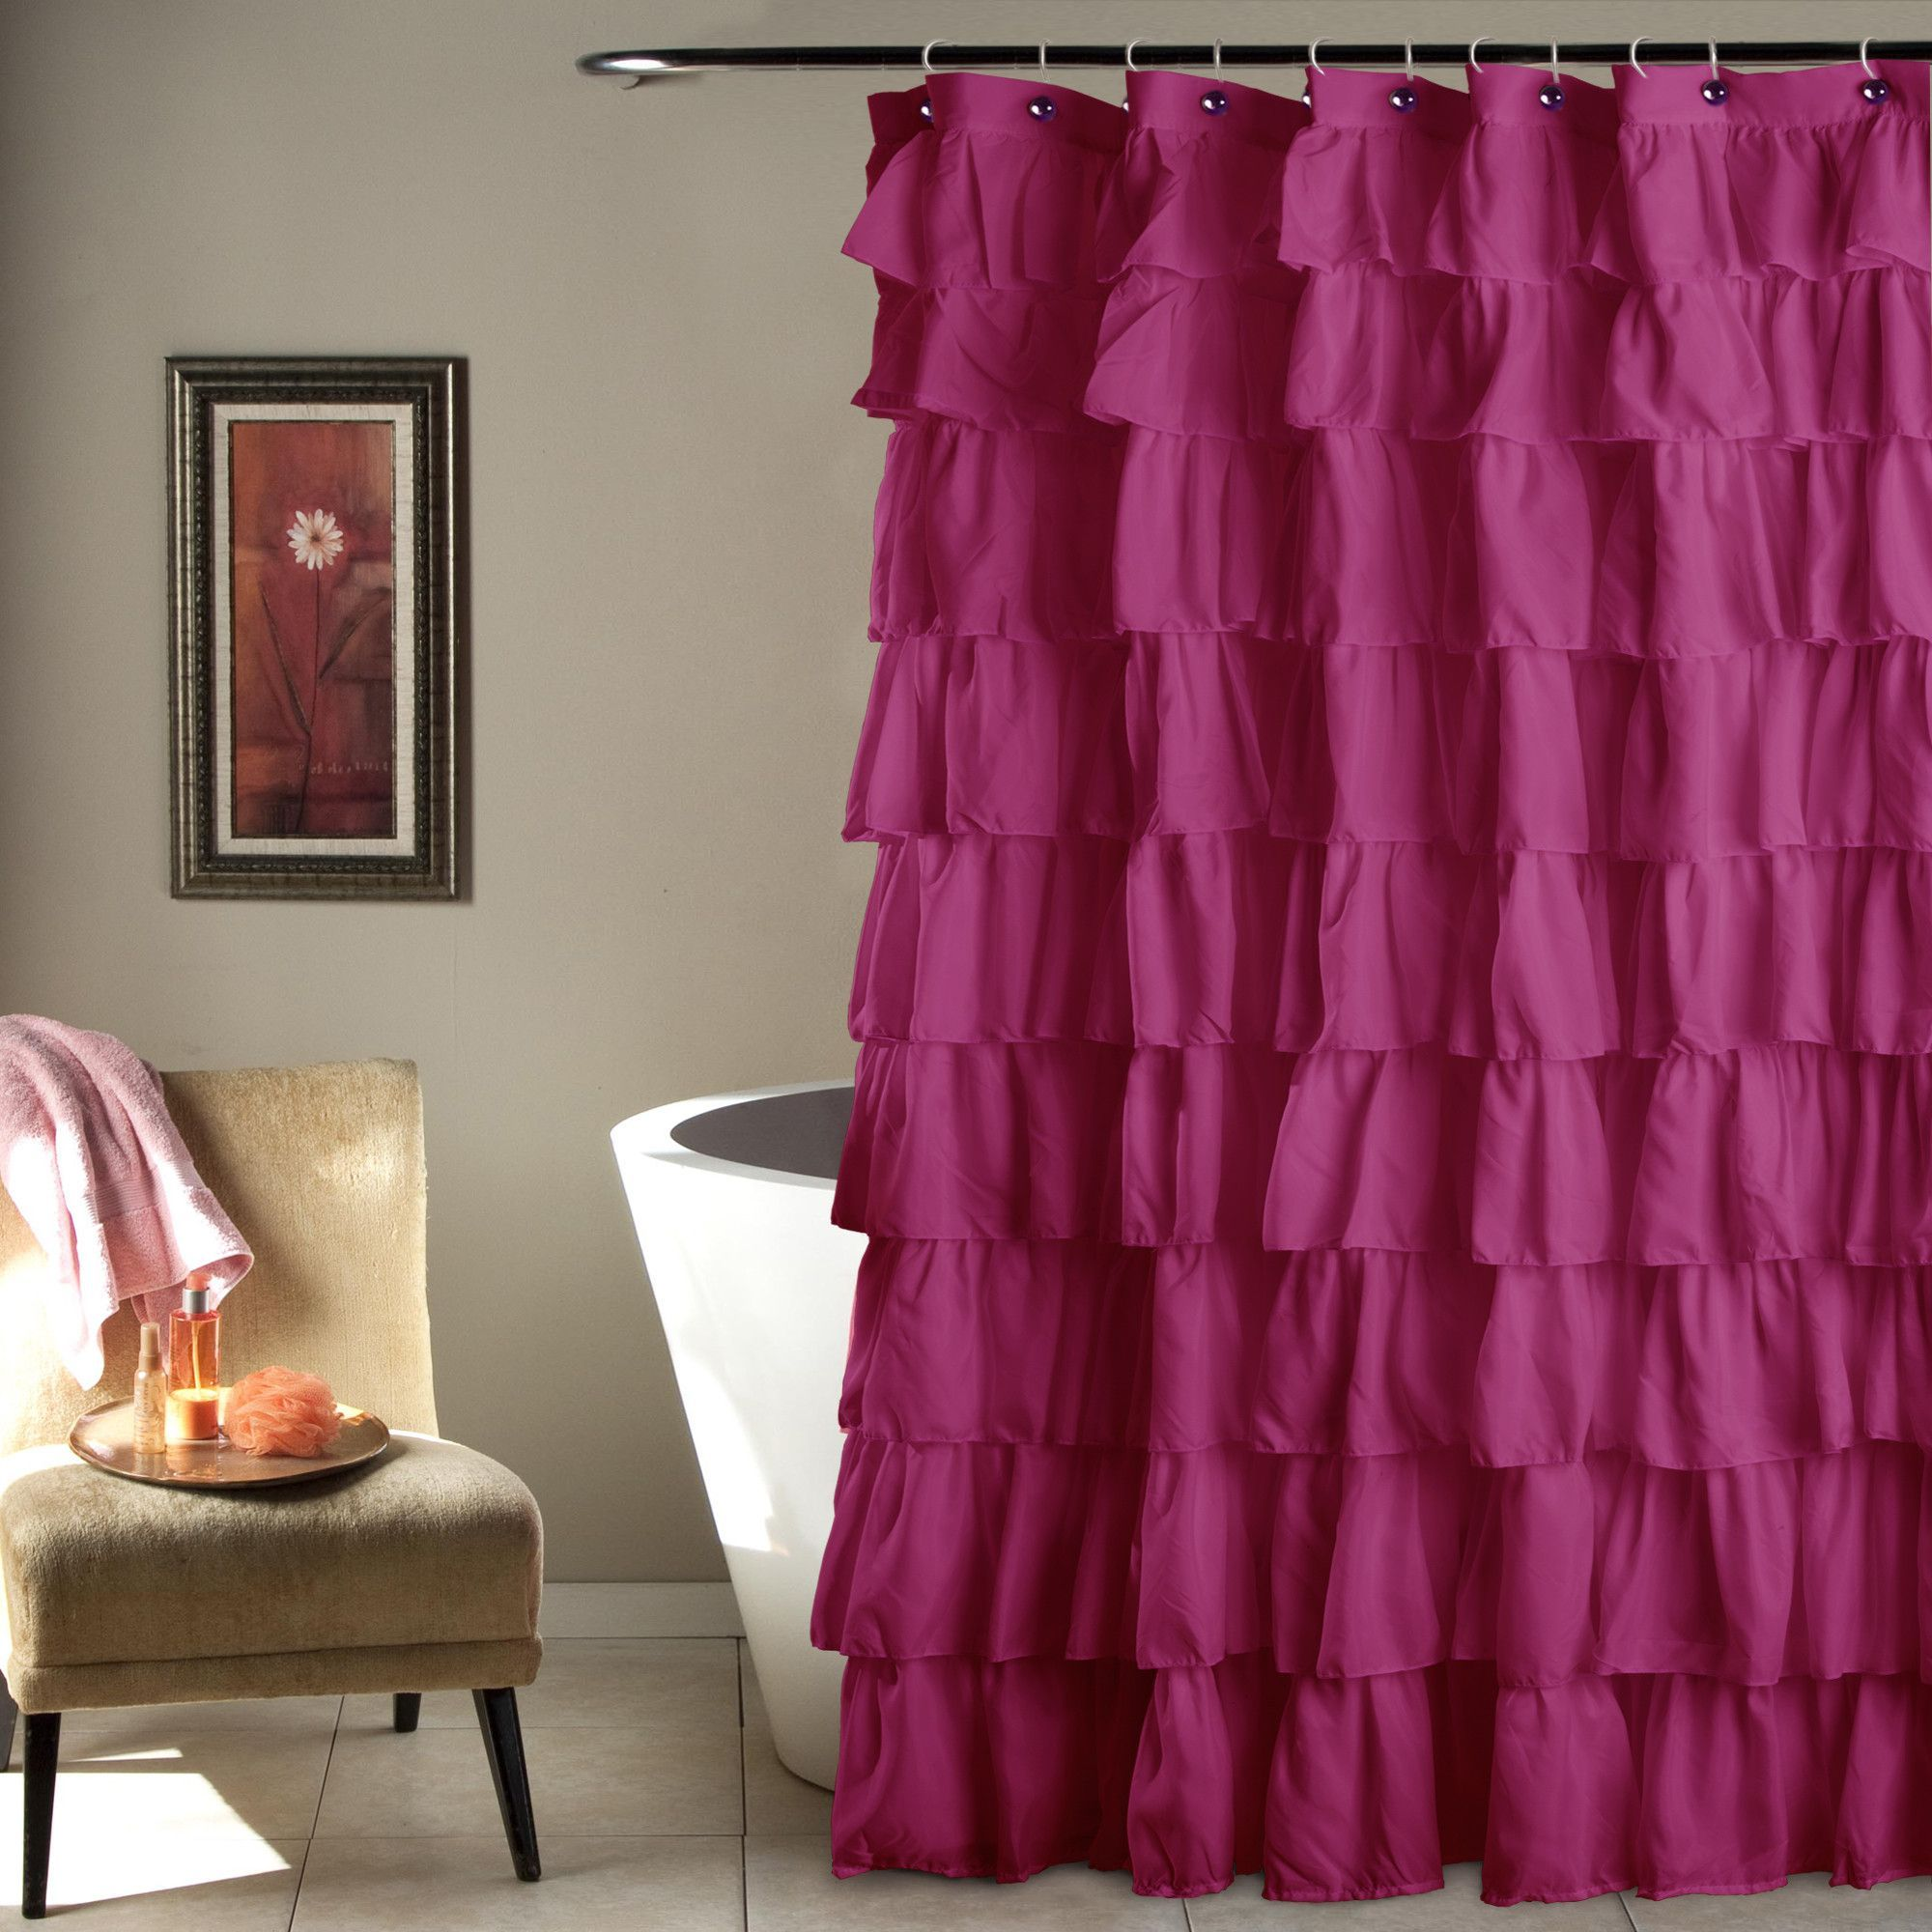 Ruffle shower curtain in microfiber has overlapping ruffles